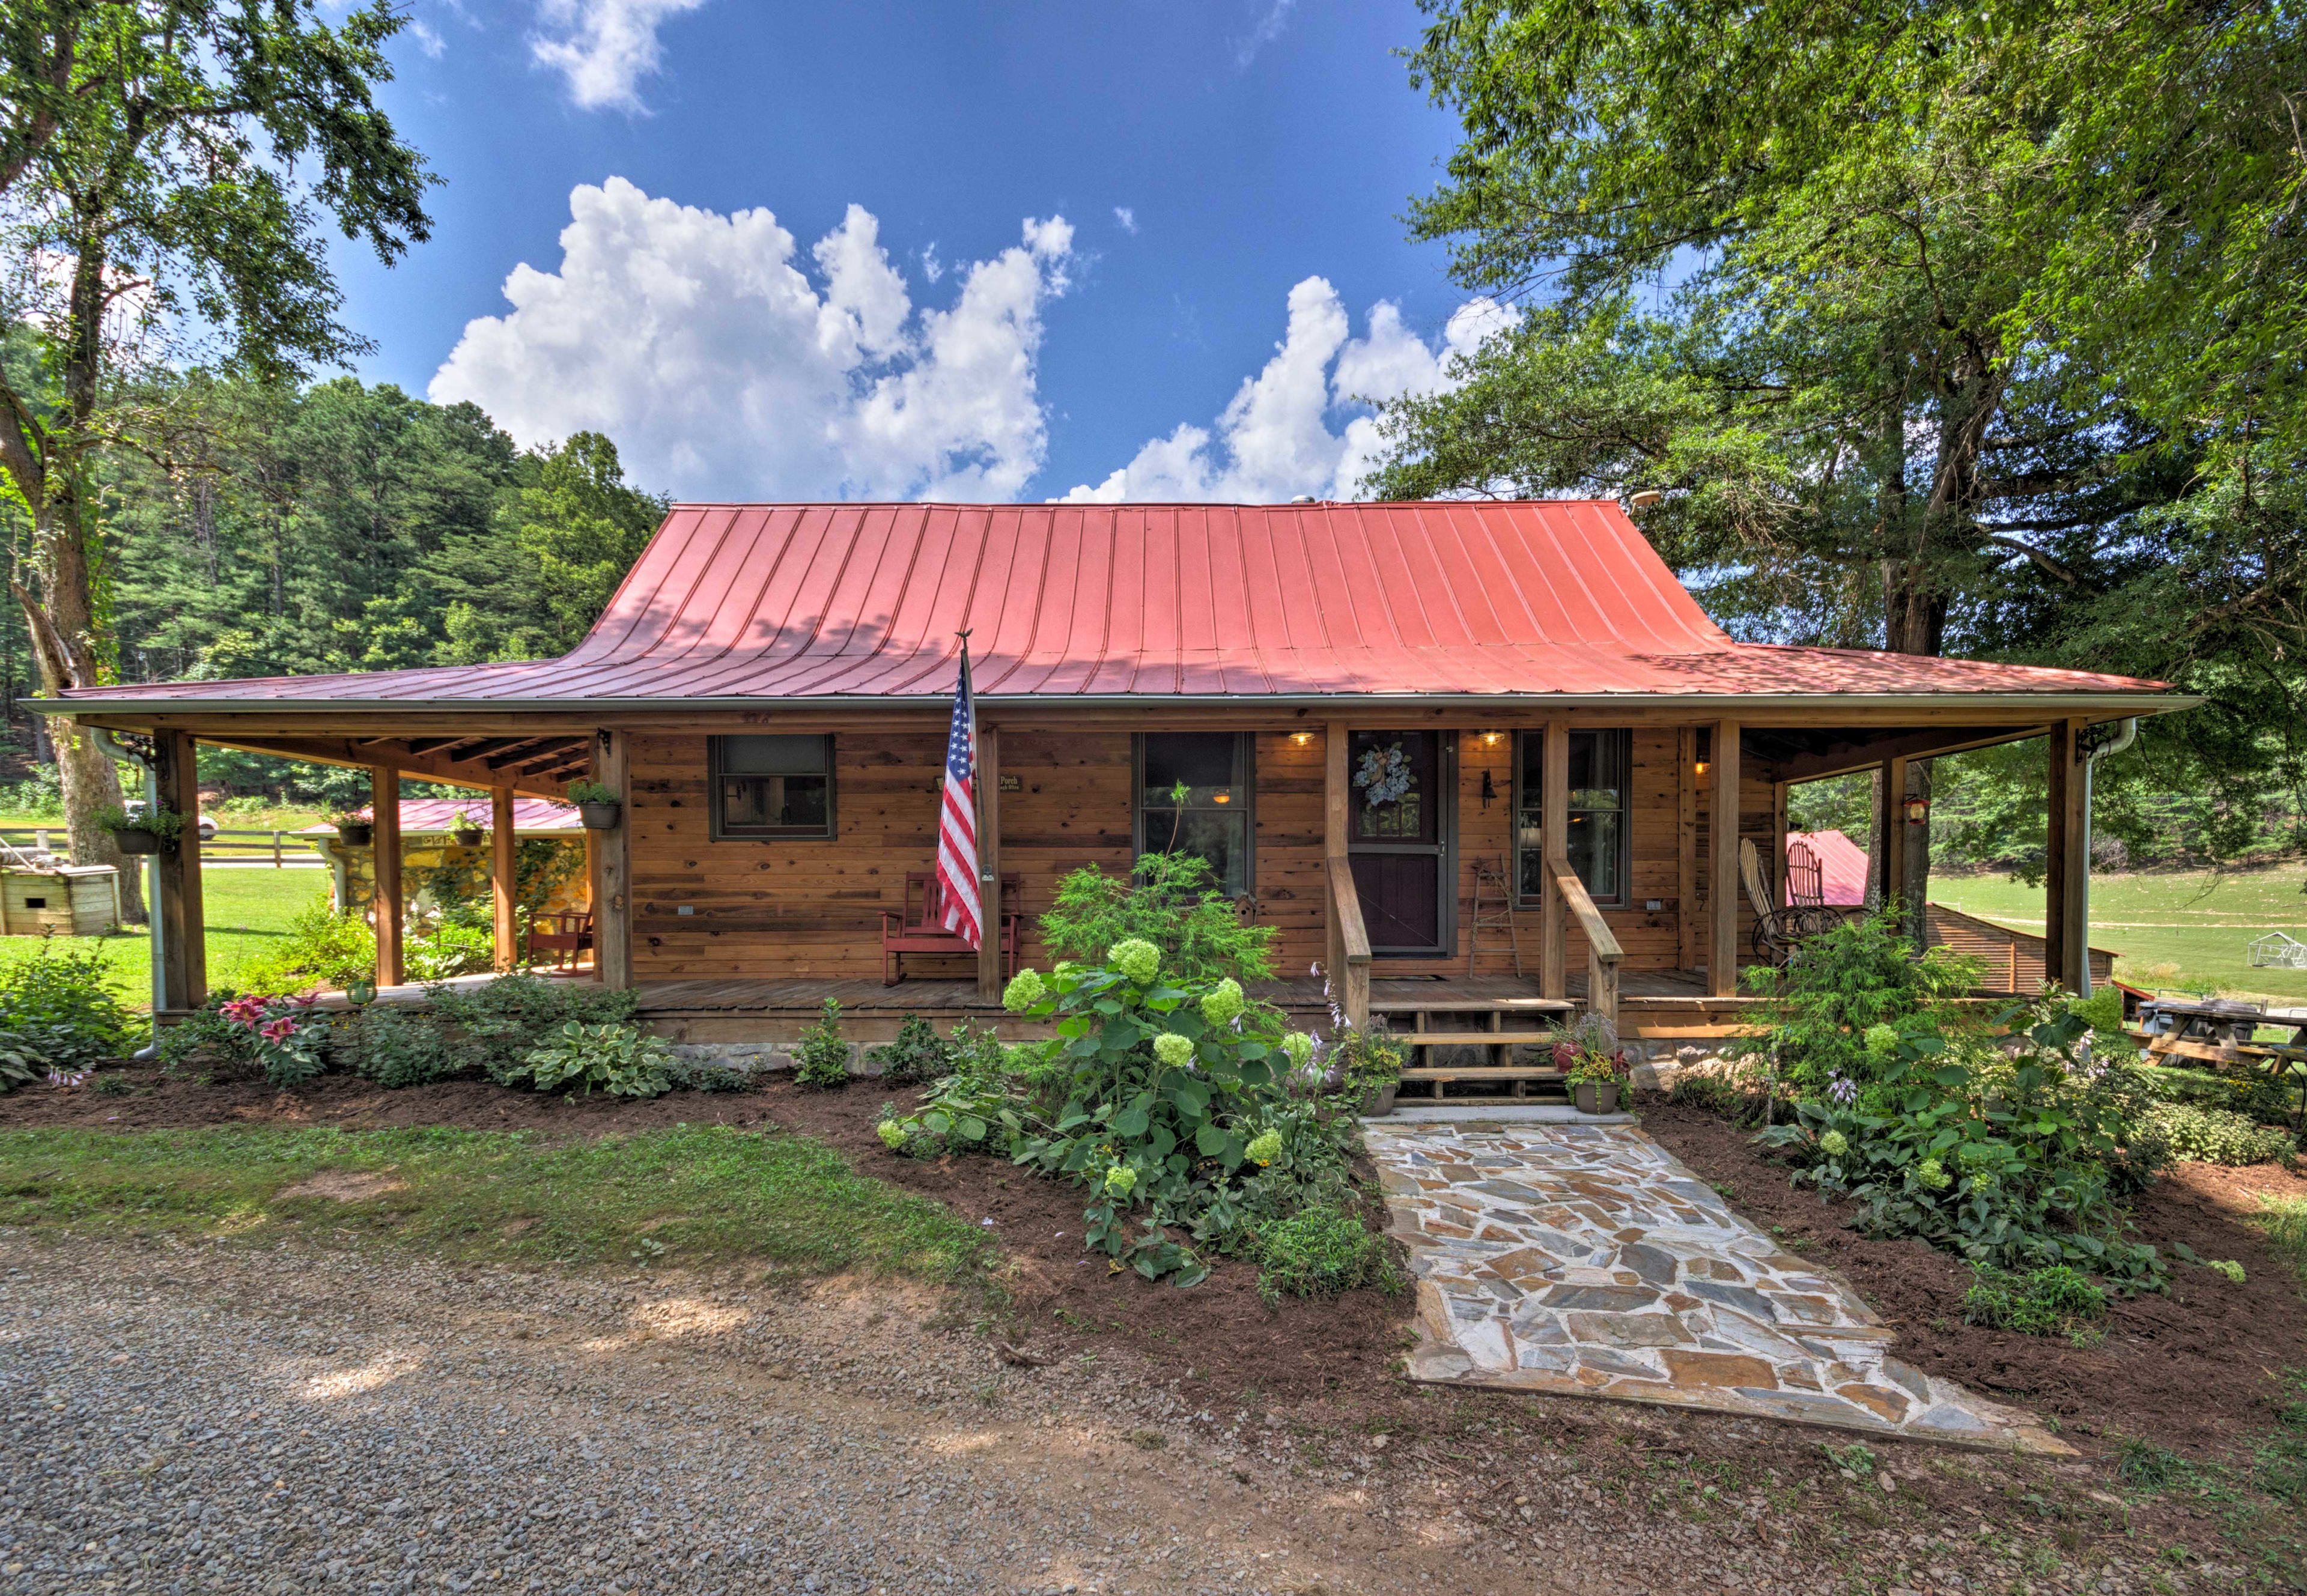 This newly renovated cabin provides luxury modern amenities.